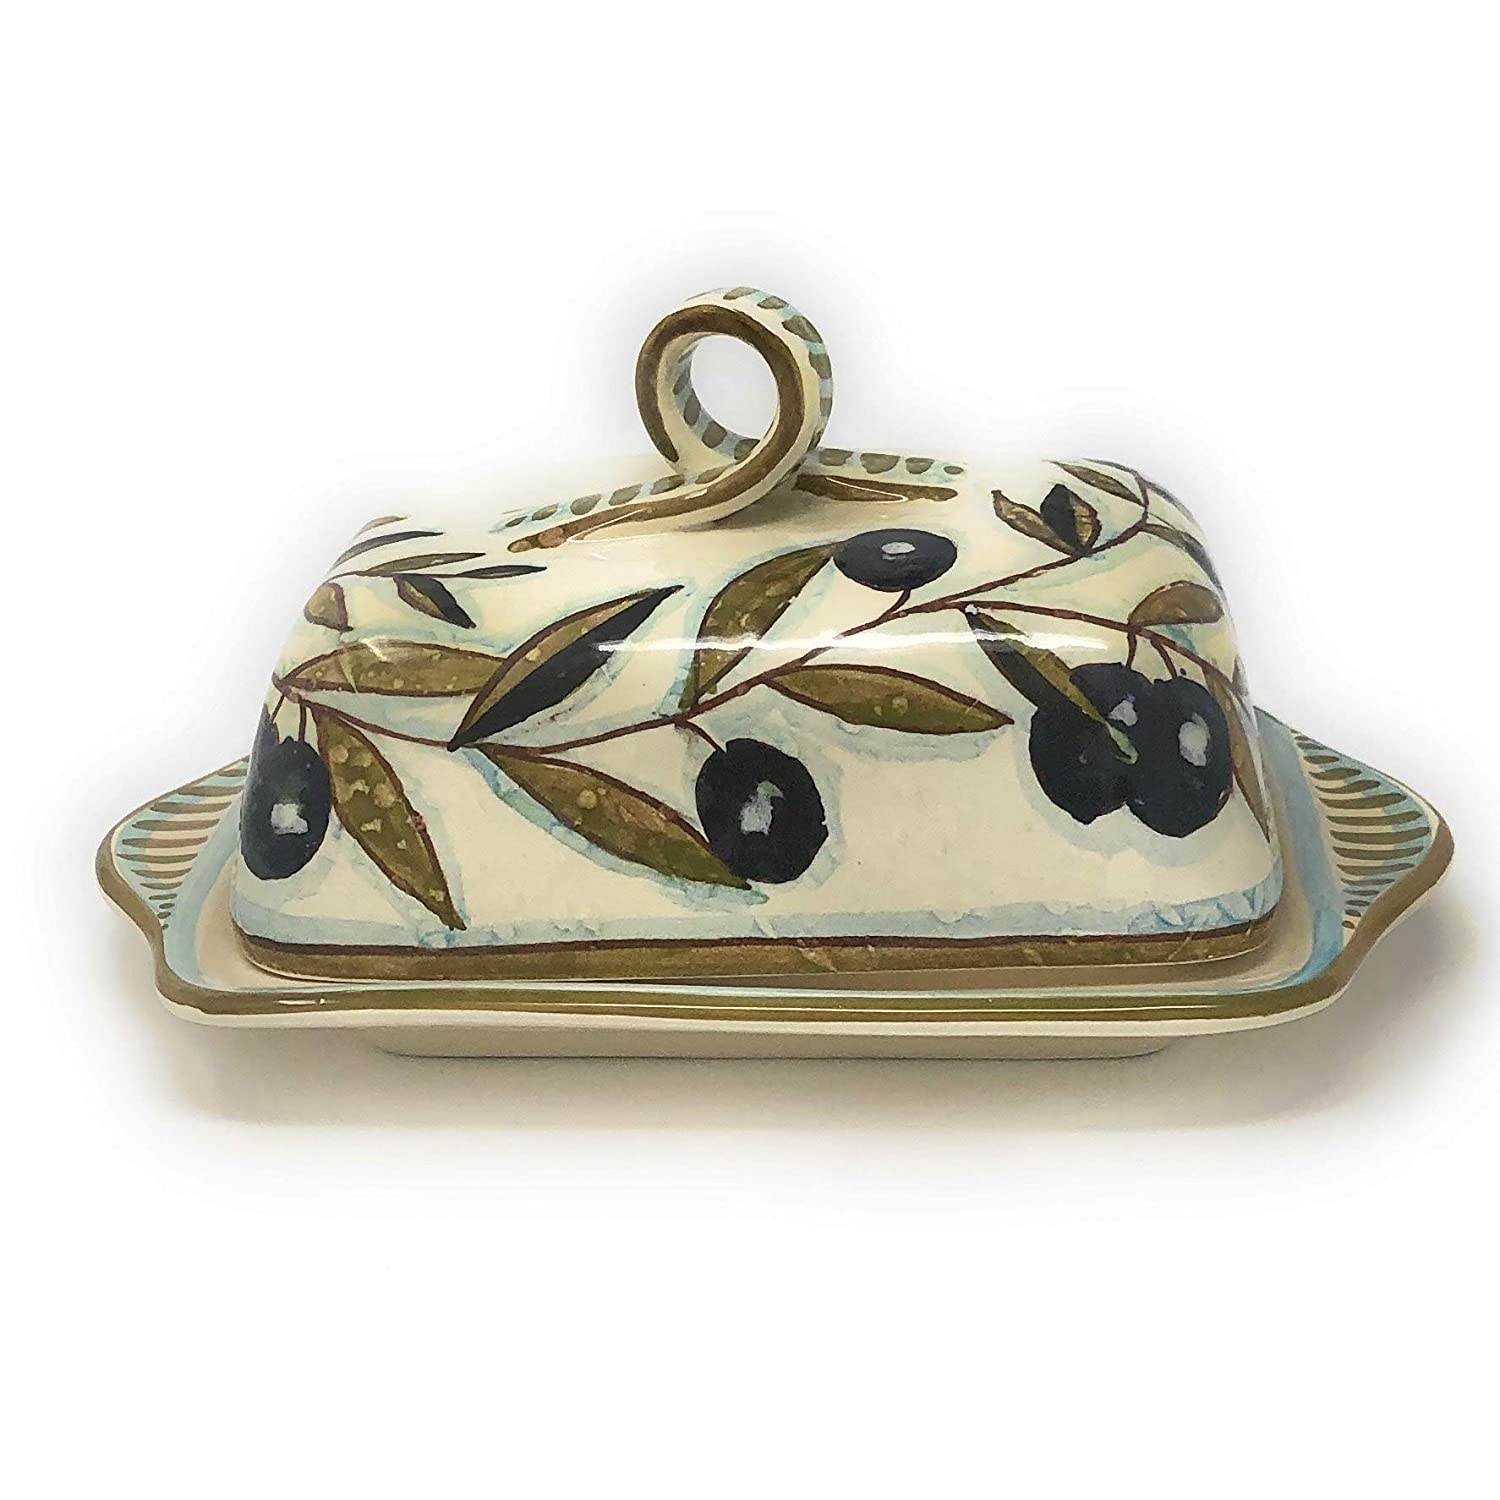 CERAMICHE D'ARTE PARRINI- Italian Ceramic Butter Dish Hand Painted Decorated Country Made in ITALY Tuscan Art Pottery